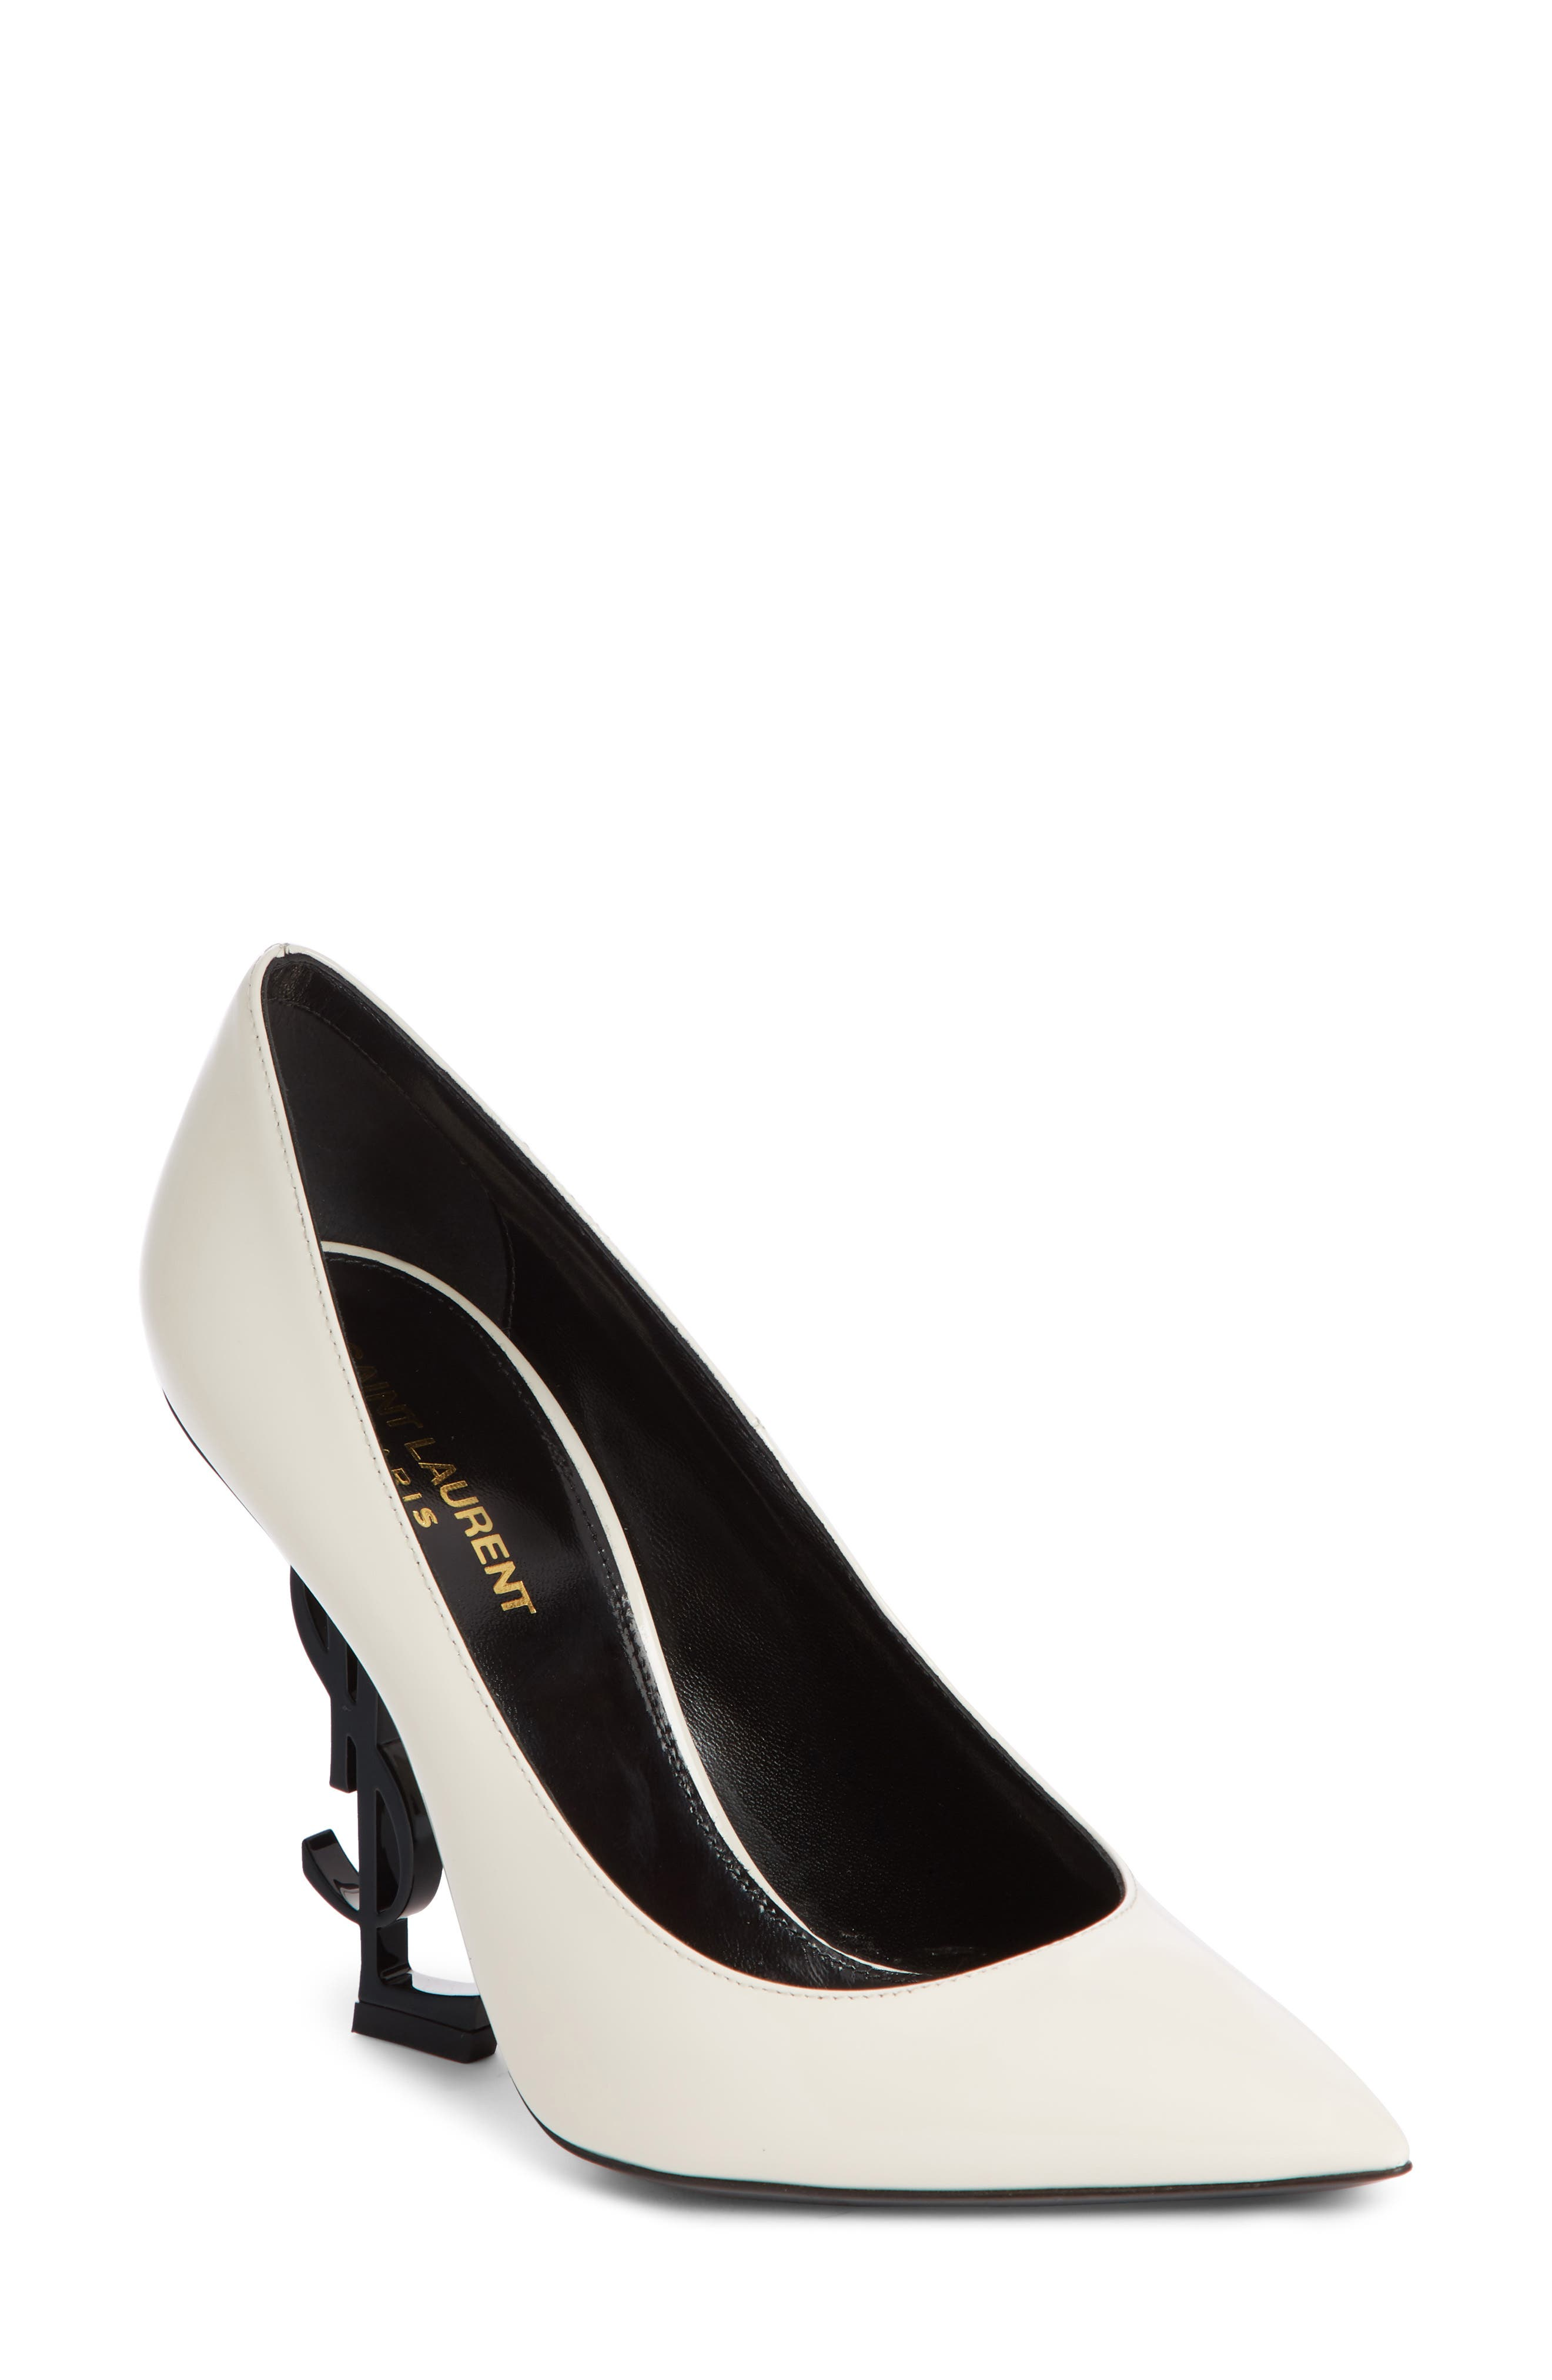 Saint Laurent Opyum Ysl Pointy Toe Pump, White